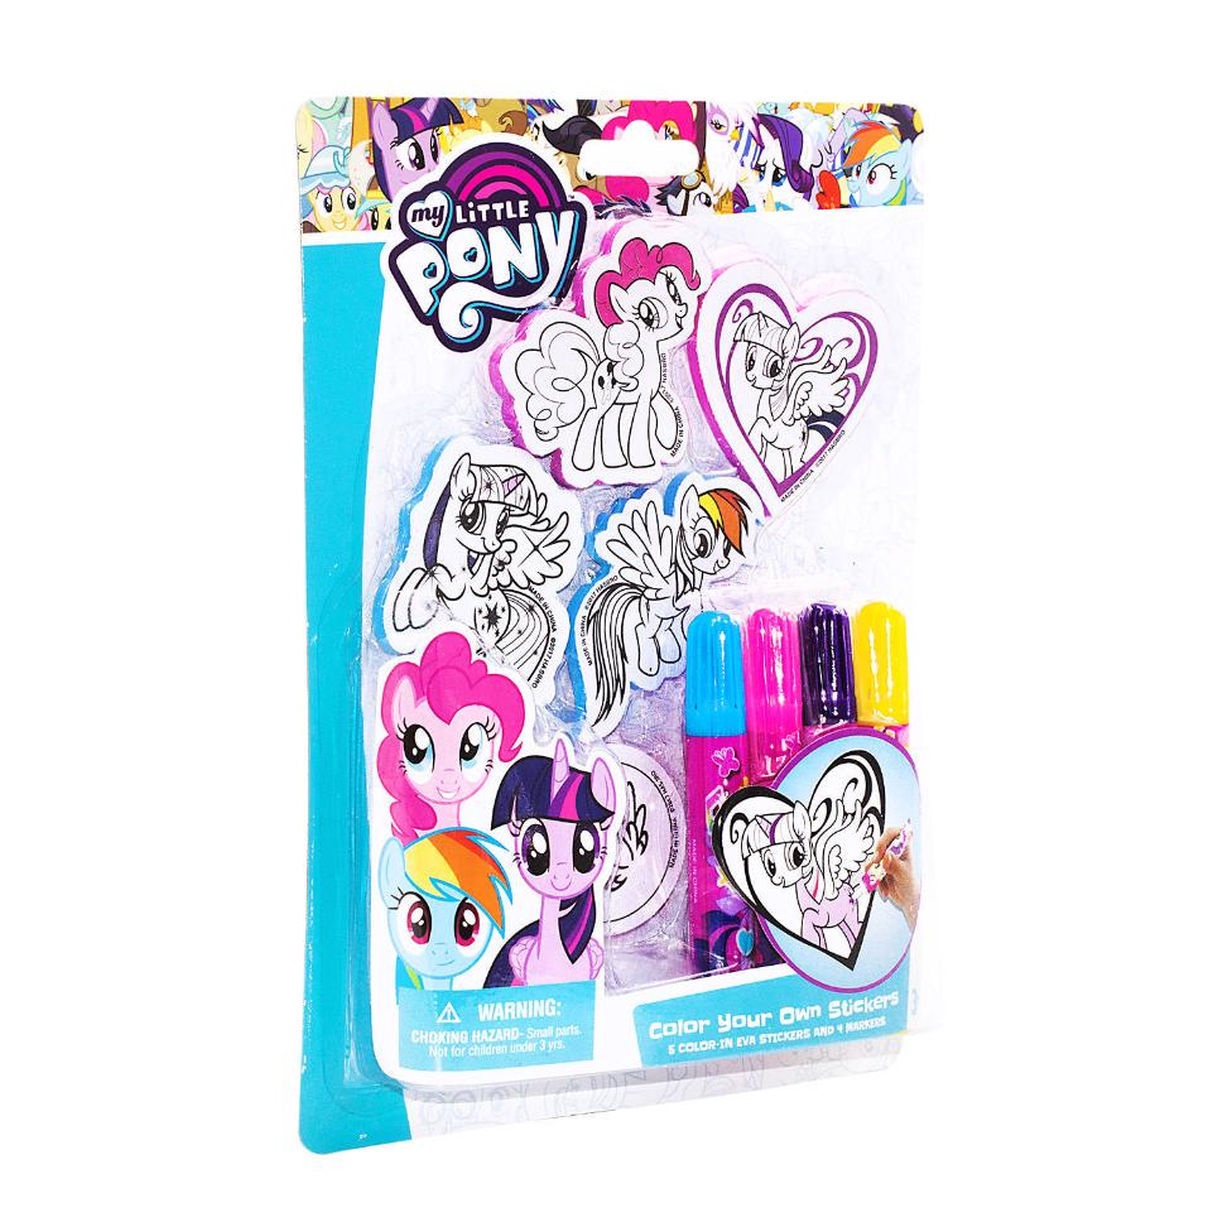 MY LITTLE PONY COLOR YOUR OWN STICKERS